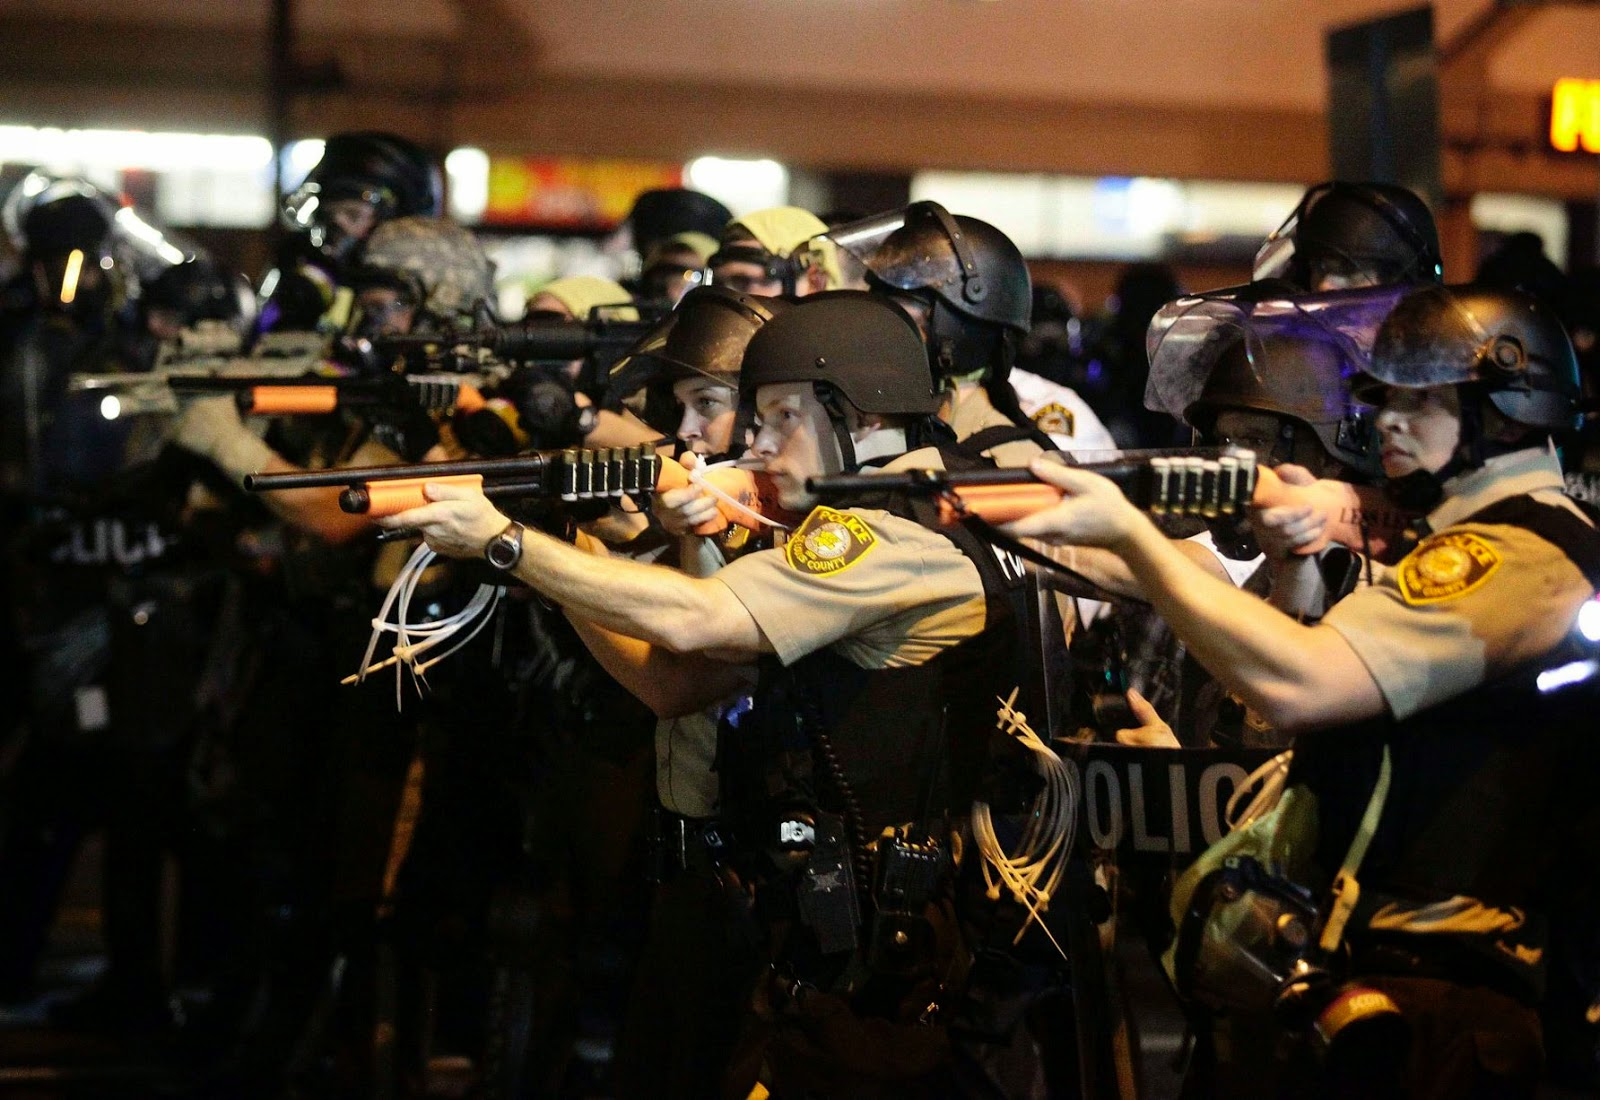 $40 million lawsuit slams Ferguson police actions during recent protests